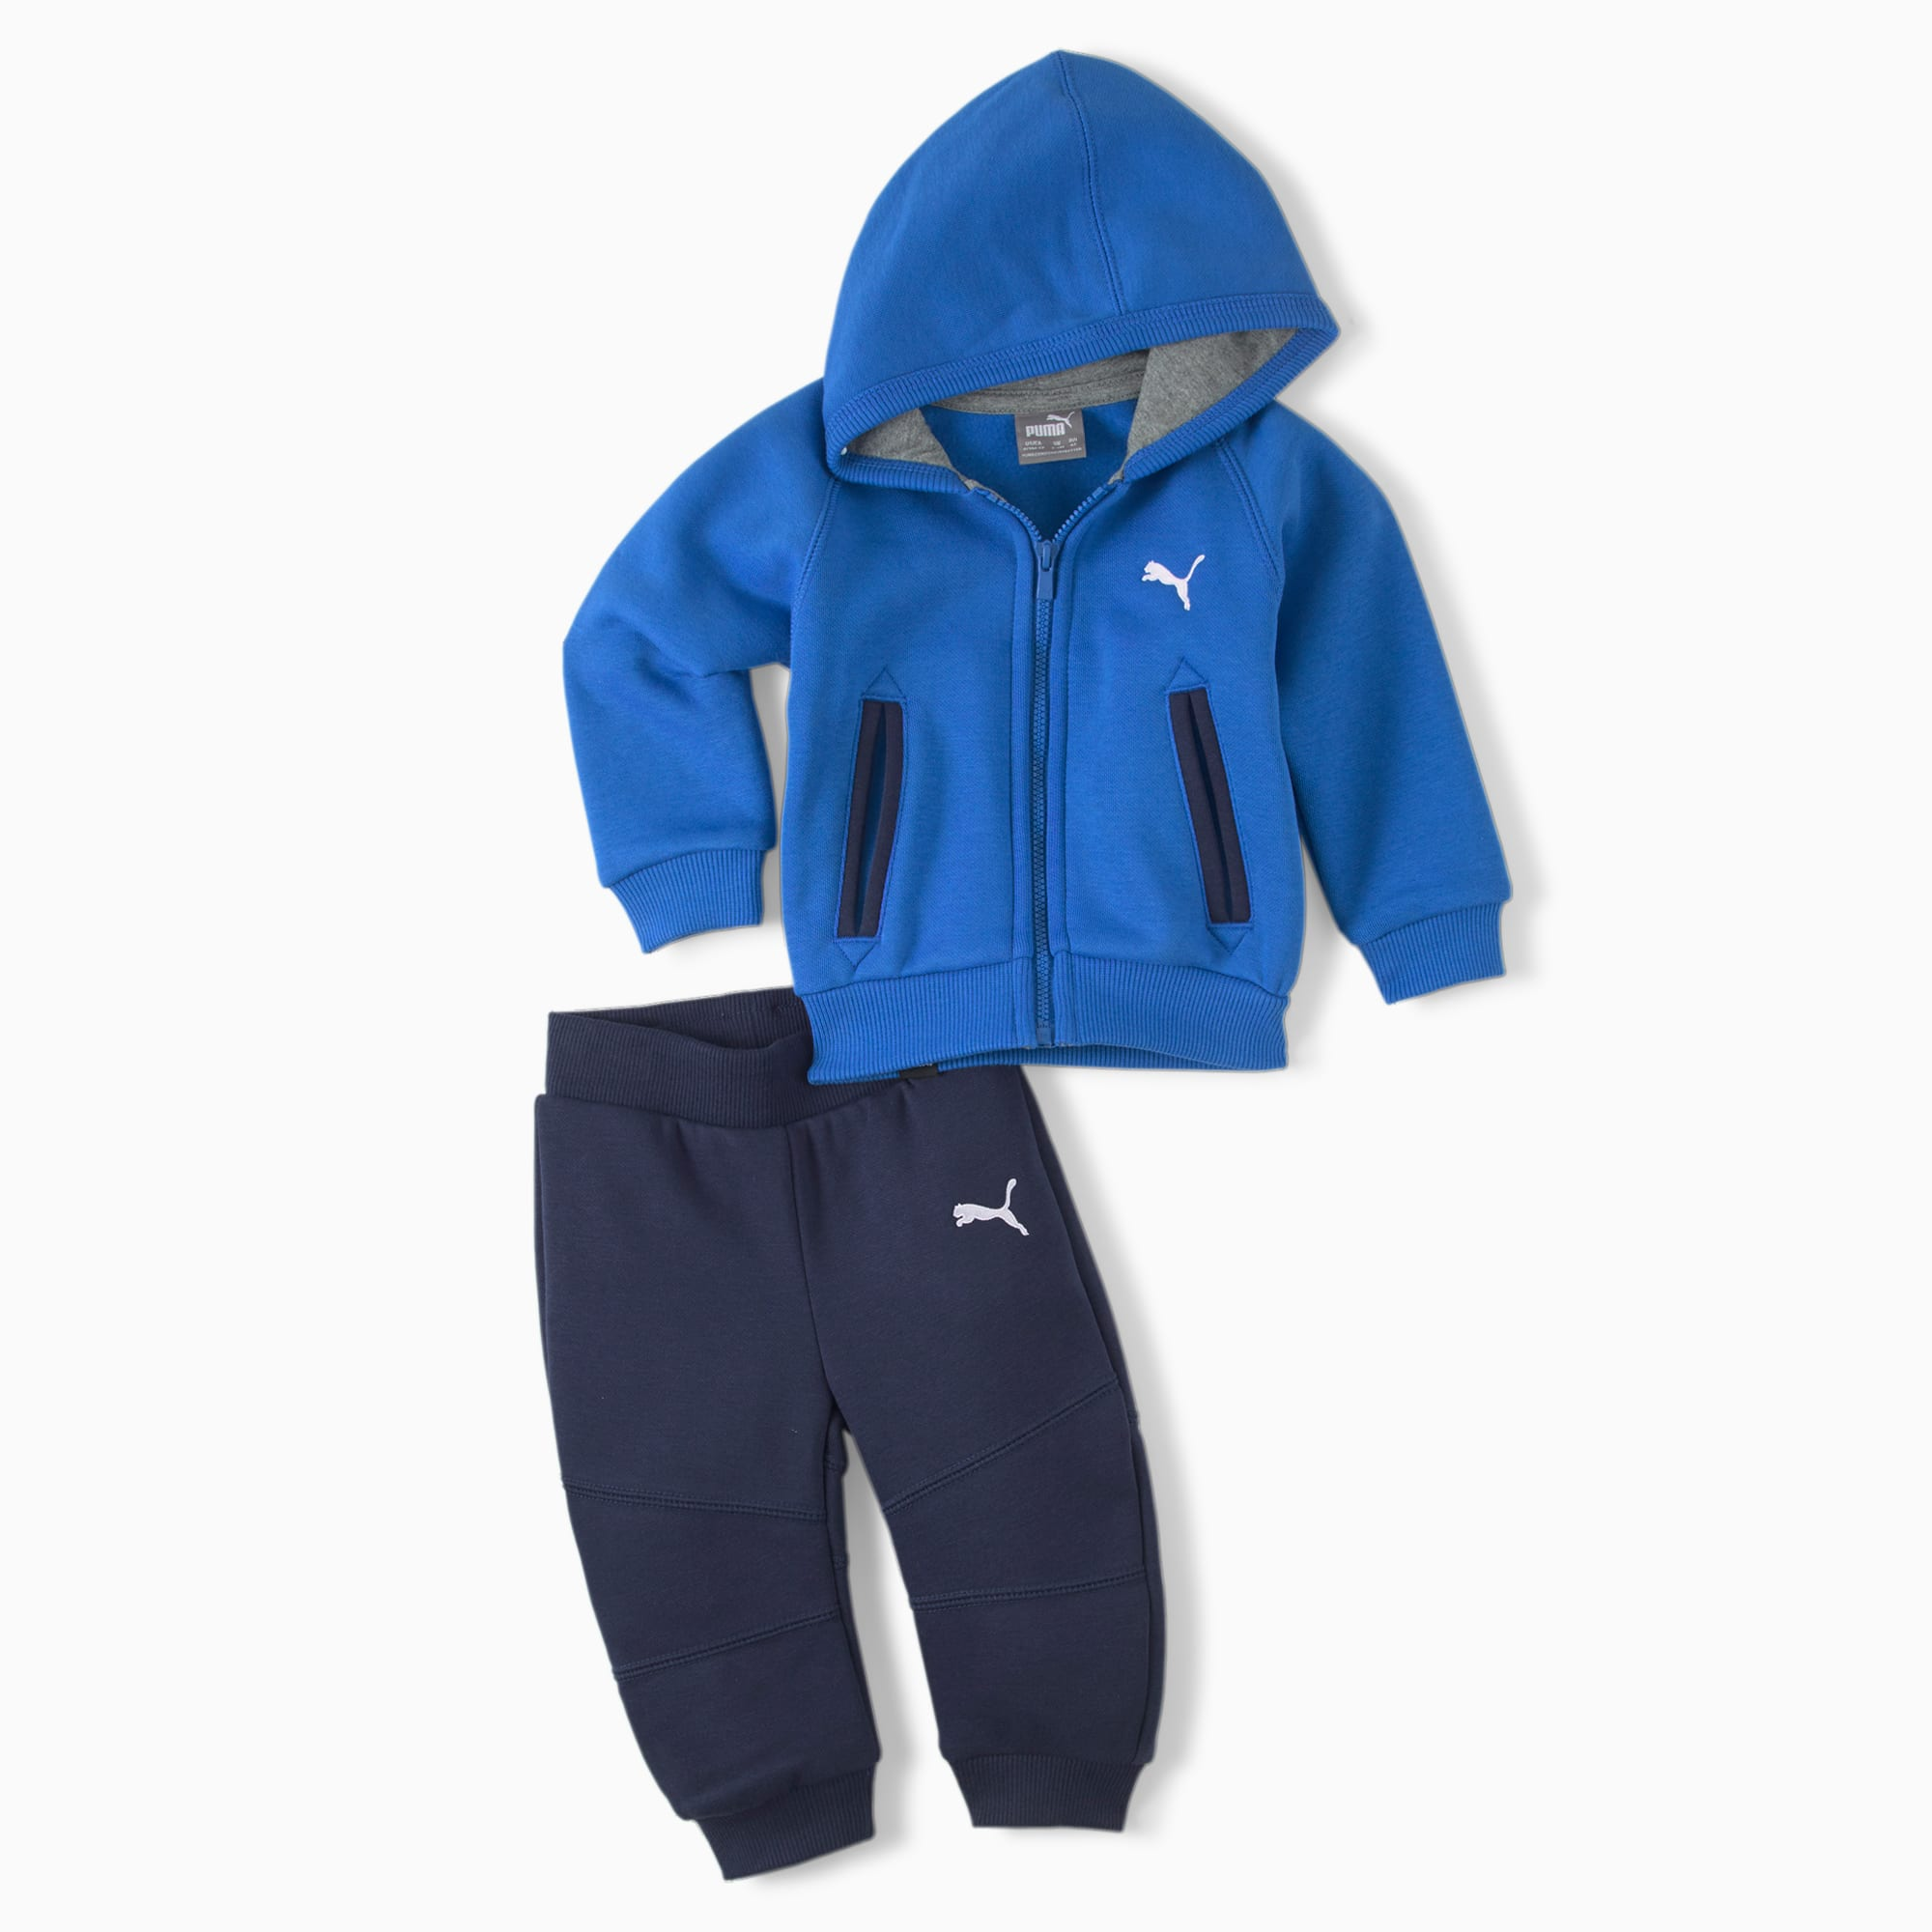 PUMA Cn Hooded Babies' Jogger Set, Strong Blue, size 4-6 Months, Clothing